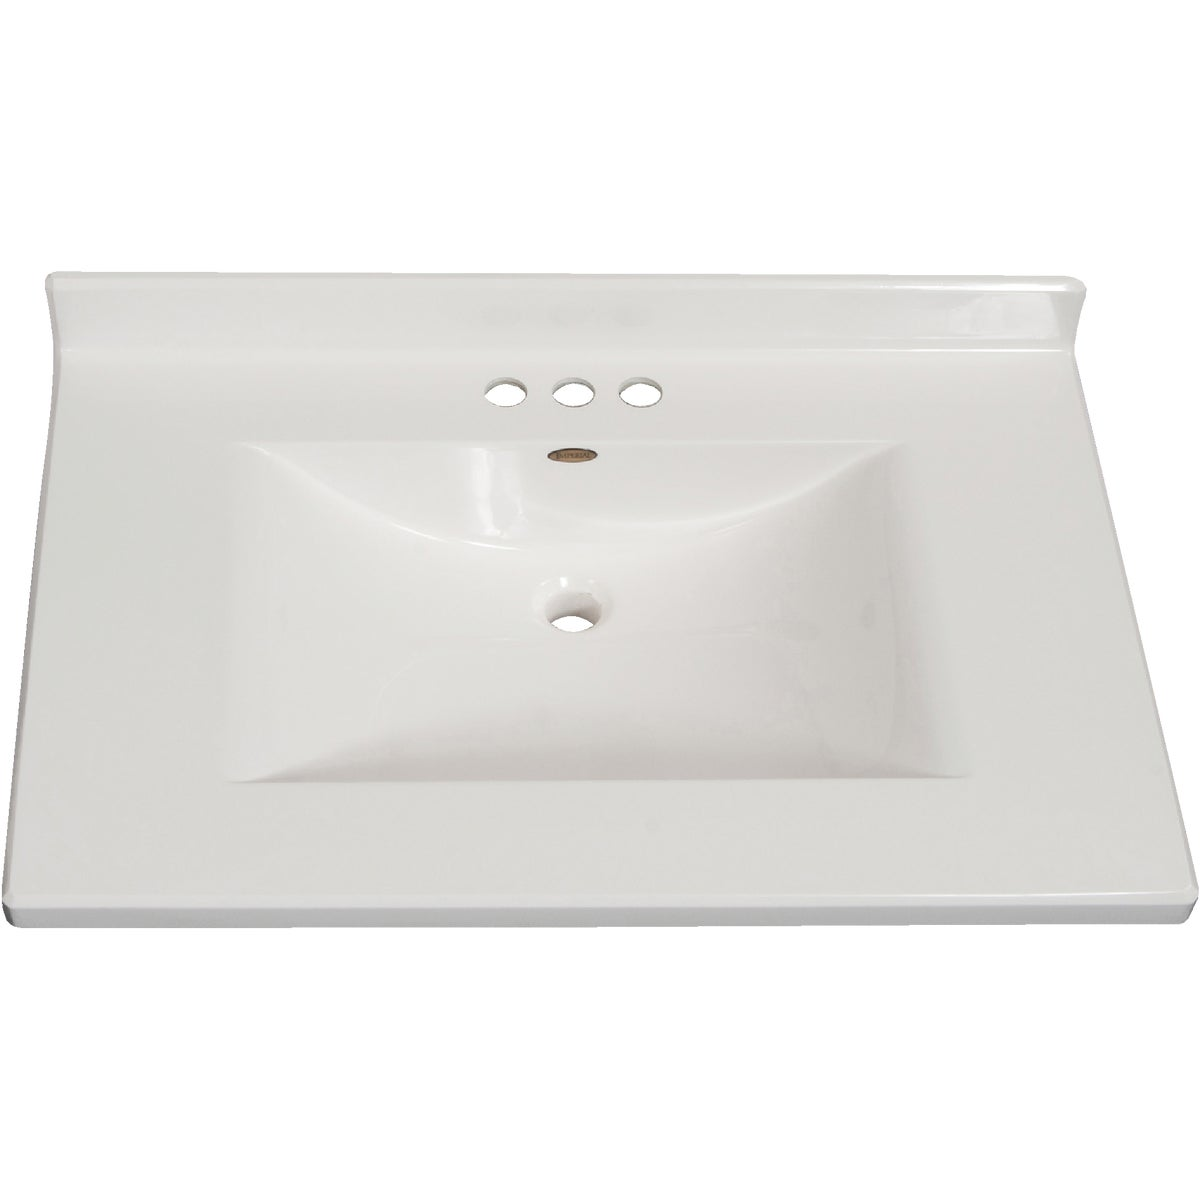 31X22 WHT WVE VANITY TOP - VW3122SPW by Imperial Marble Corp